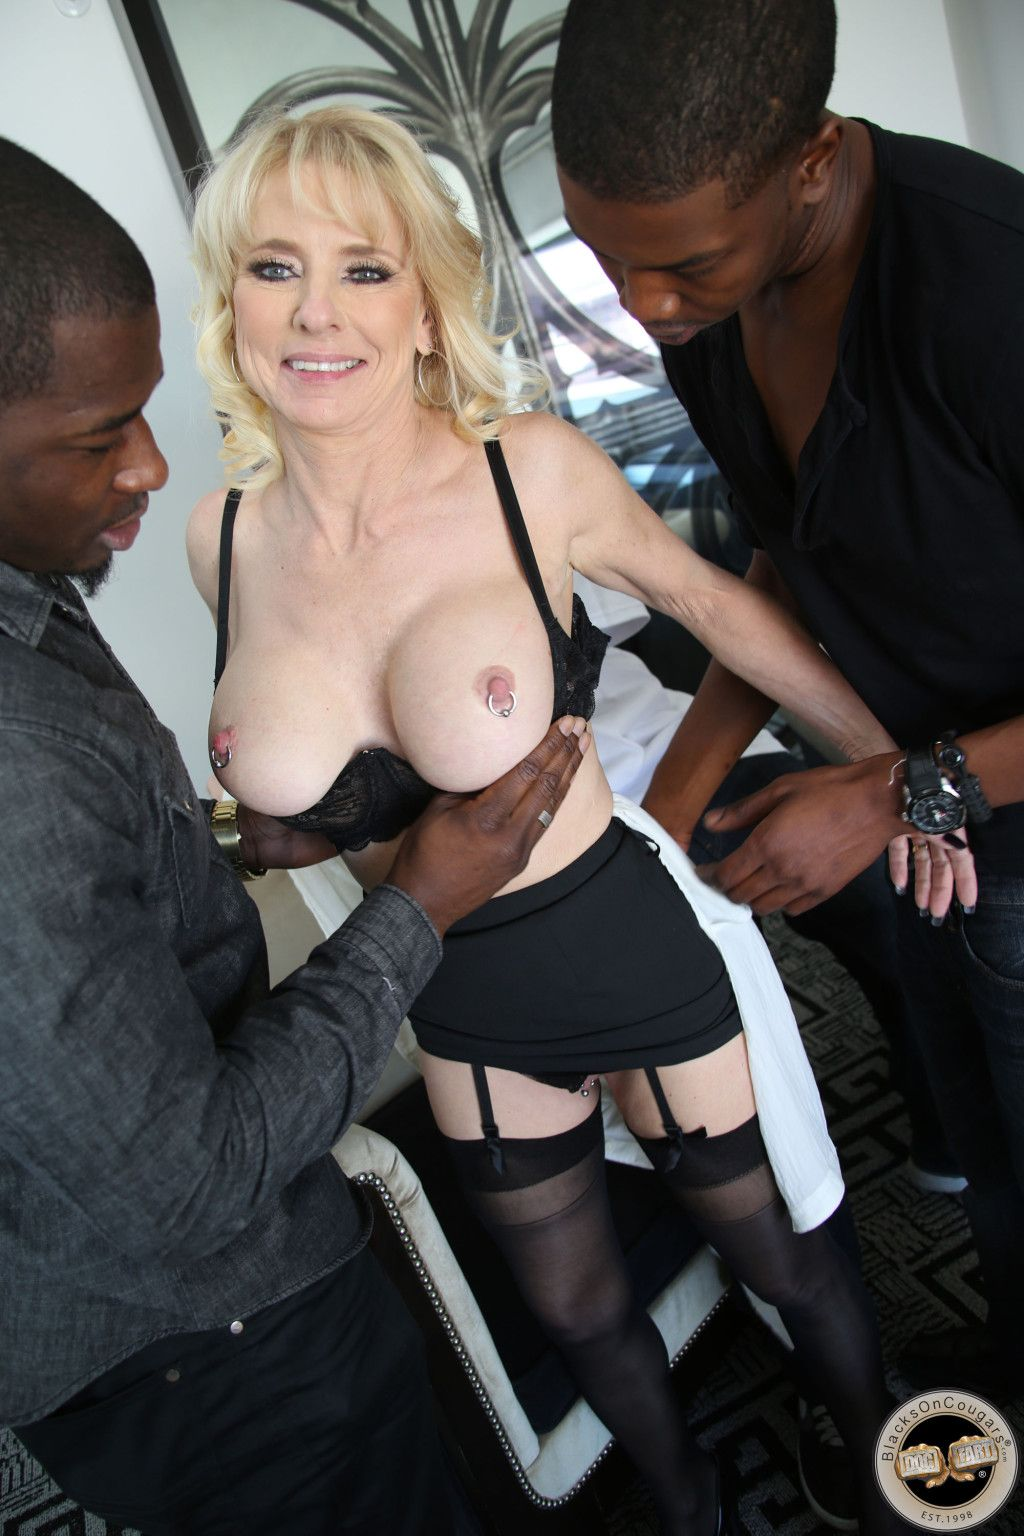 Cuckold tale from black neighborhood become a nightmare - 1 part 9